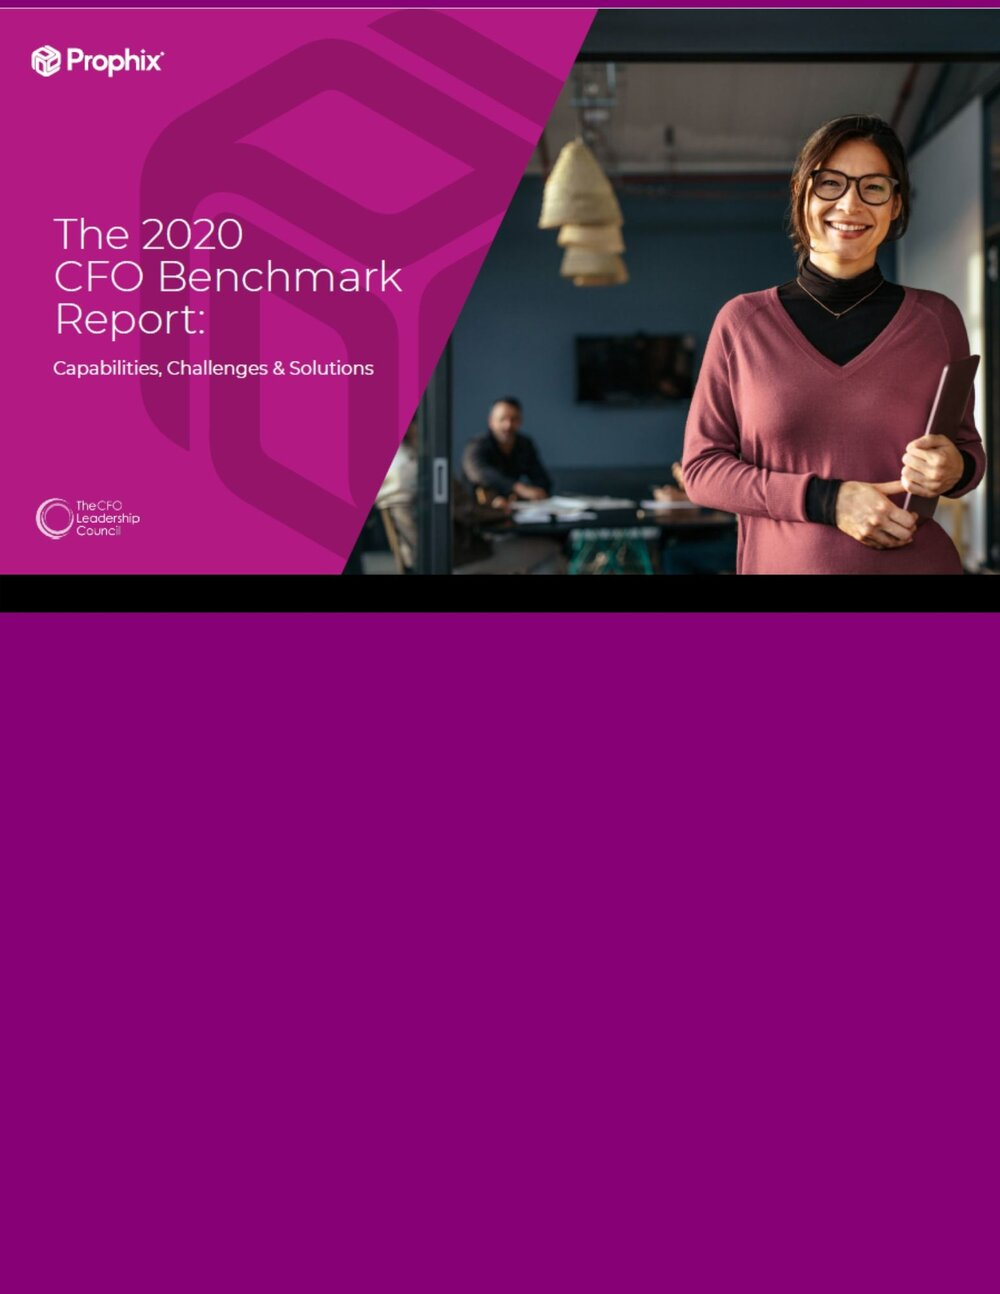 The 2020 CFO Benchmark Report: Capabilities, Challenges, & Solutions